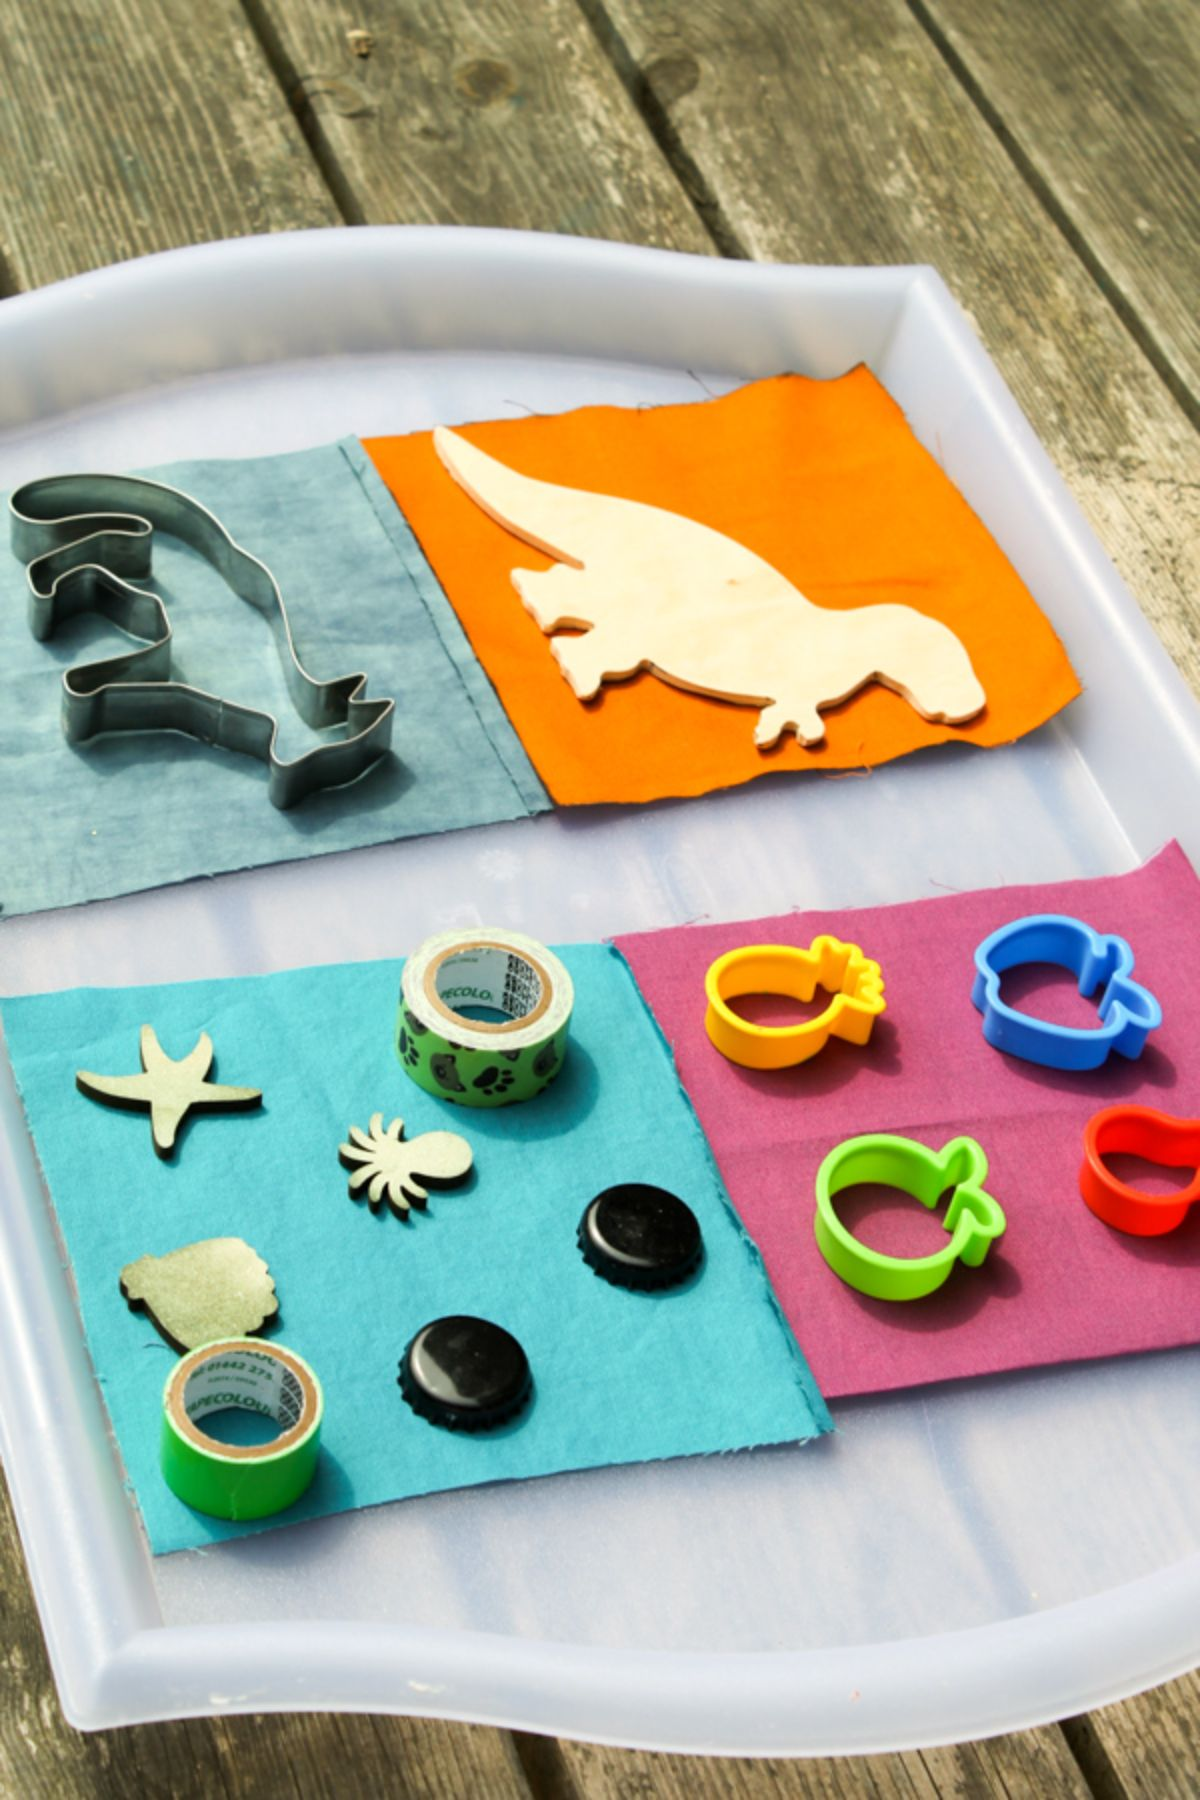 on a wooden table is a plastic tray with raised edges. 4 squares of different colored card are topped with a dinosaur cut out, a fox cookie cutter, 4 fruit shapes and some tape with 2 black bottle tops